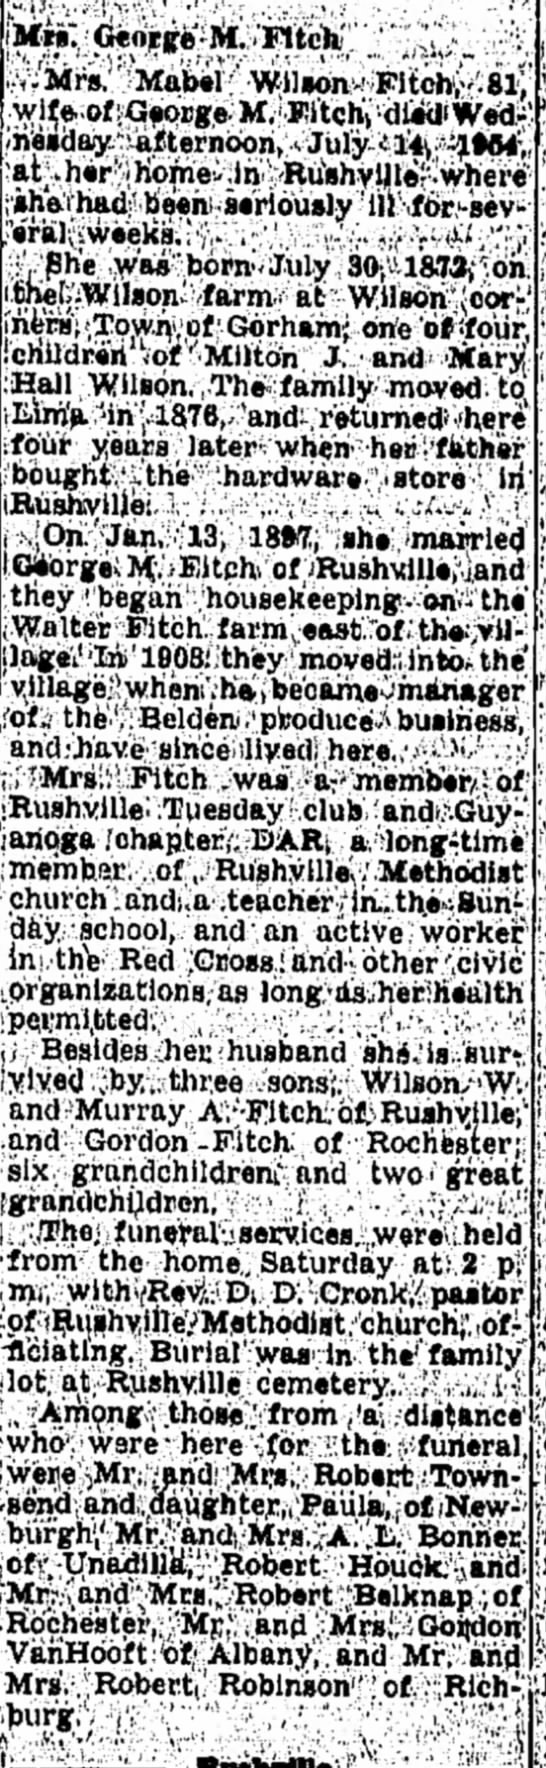 Mabel Wilson Fitch Obituary